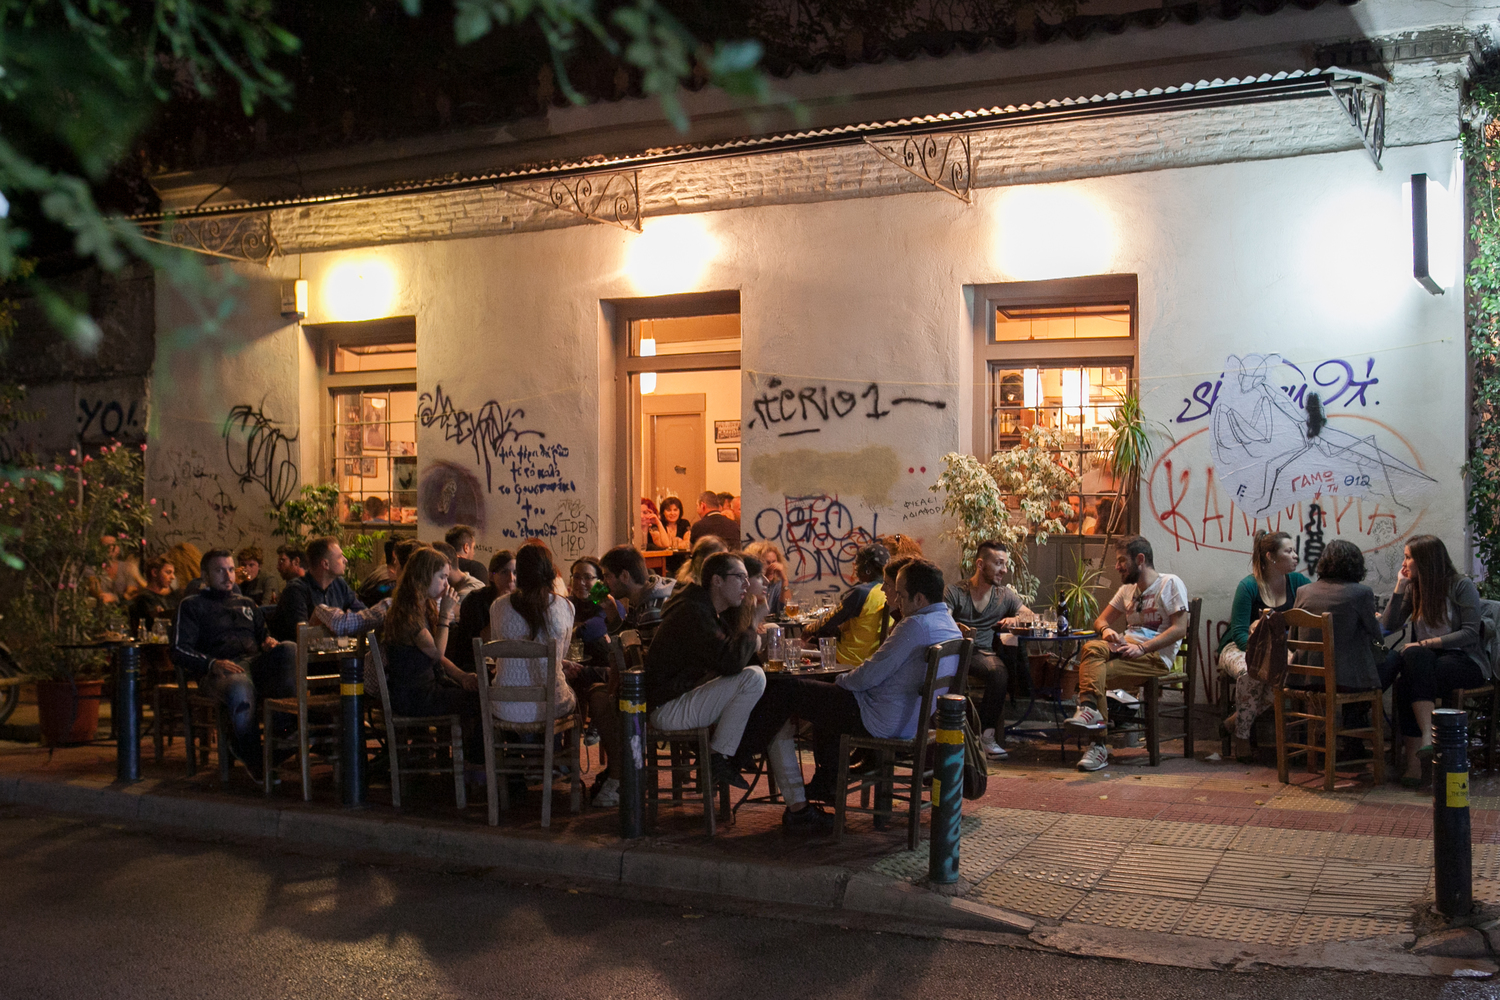 AA (3 hours): [Athens] Athens nightlife tour